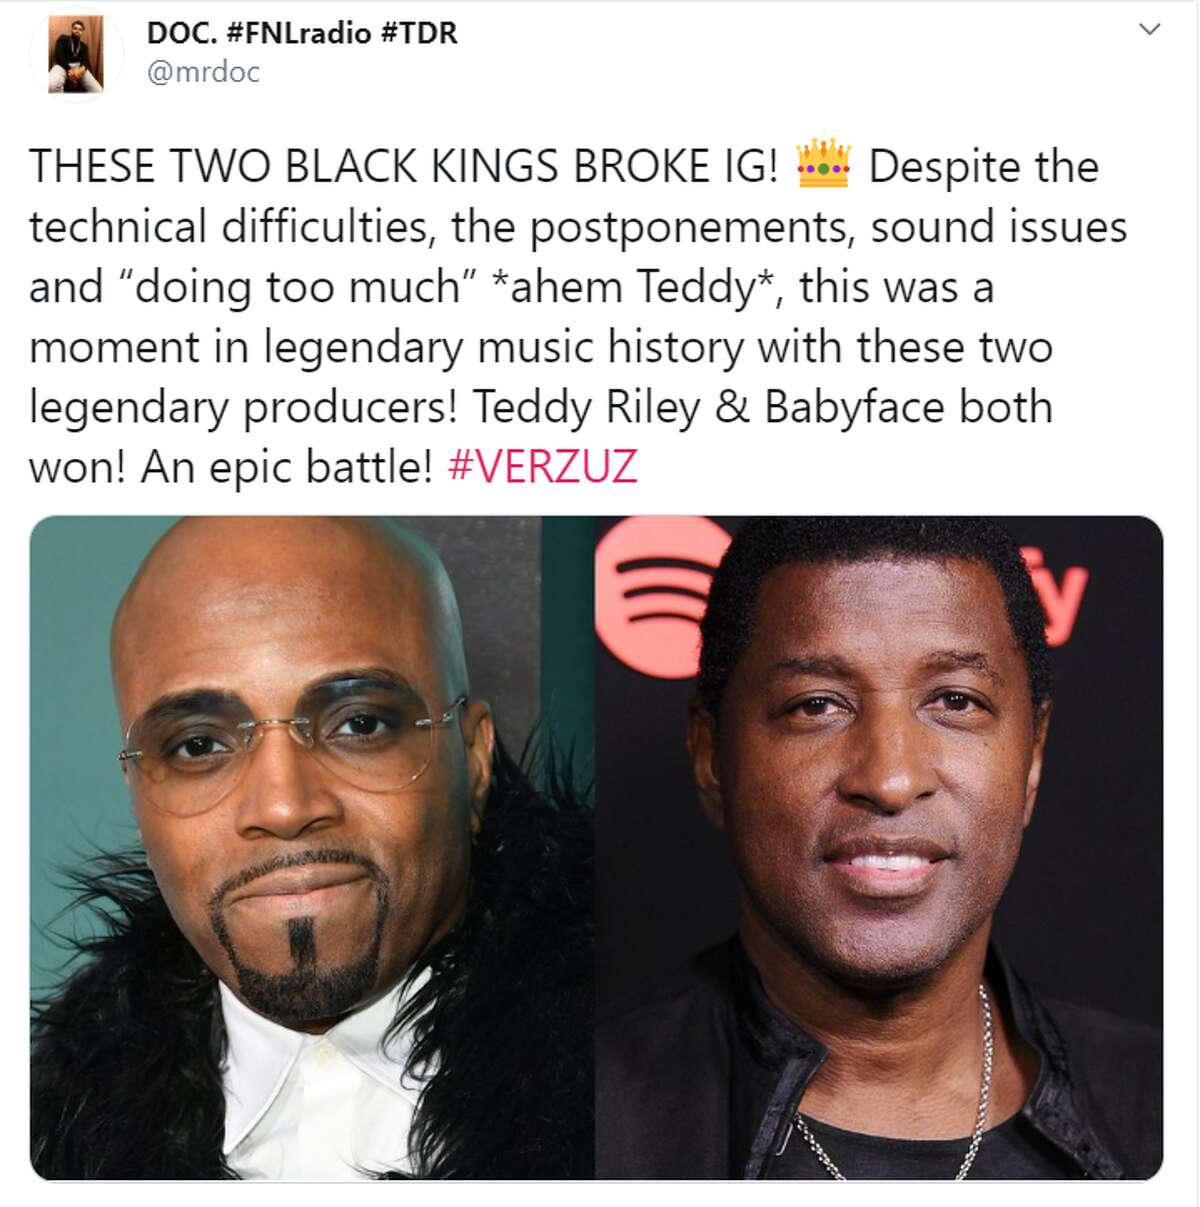 Award-winning producers Teddy Riley and Babyface had their rematch battle on Instagram Live Monday night.